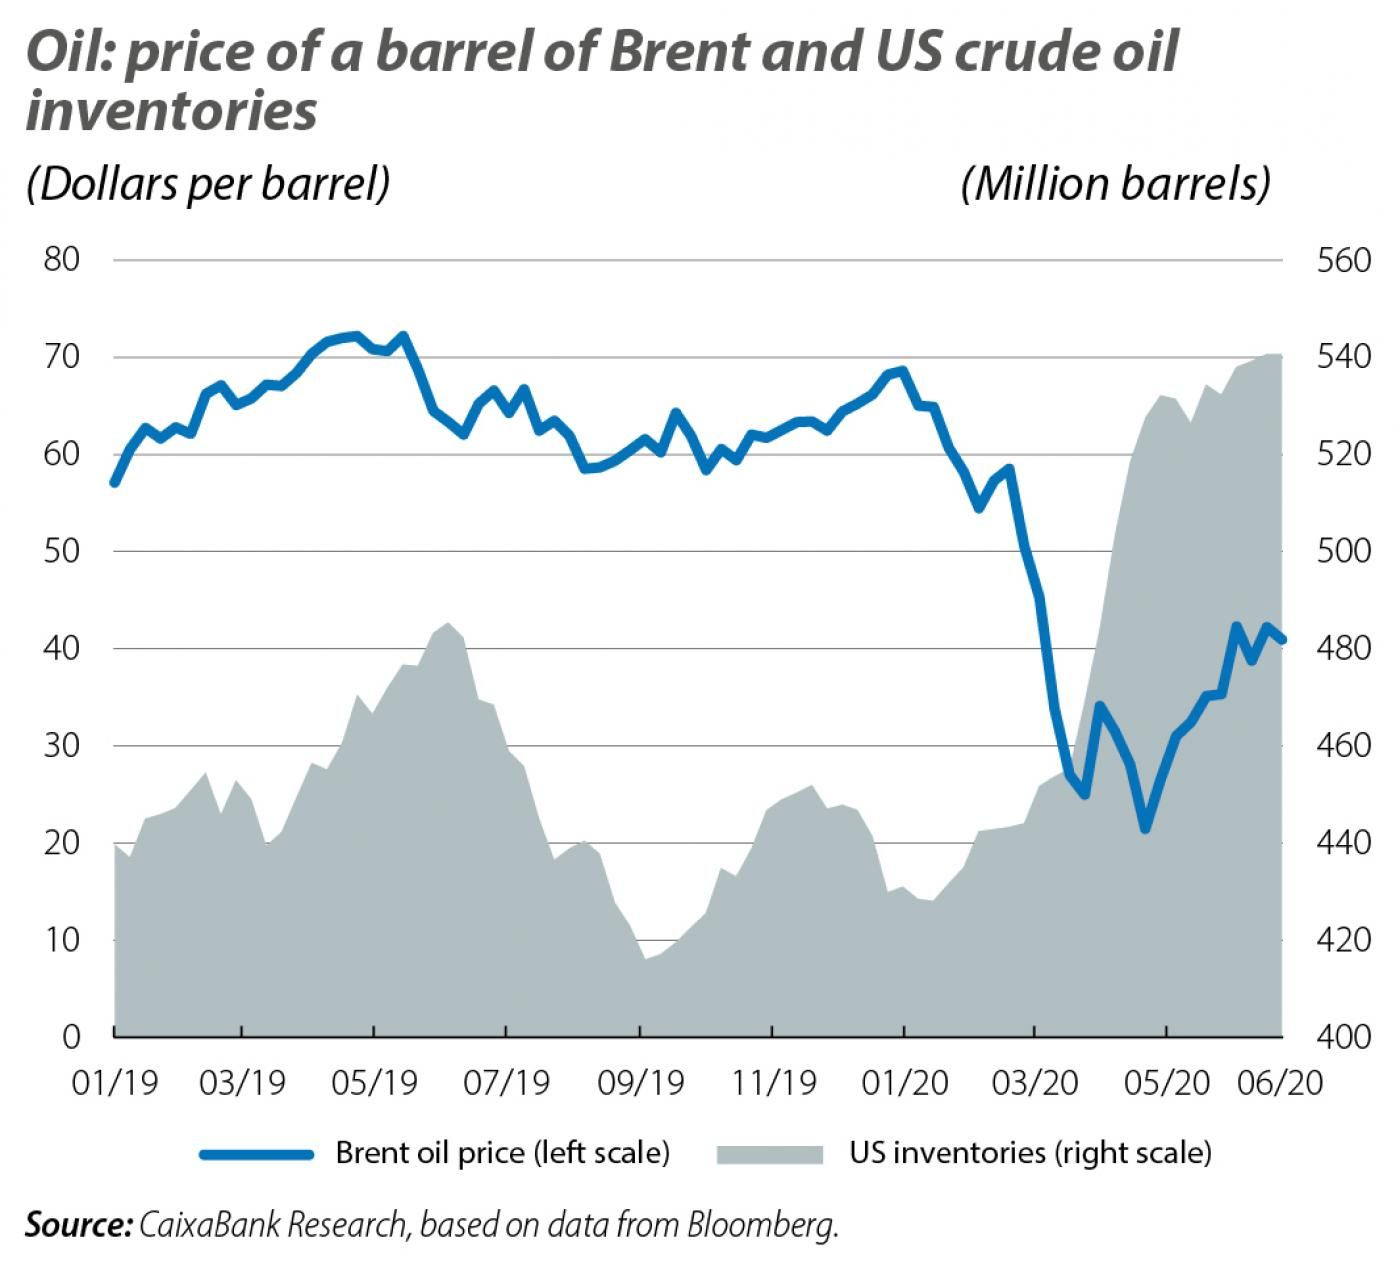 Oil: price of a barrel of Brent and US crude oil inventories